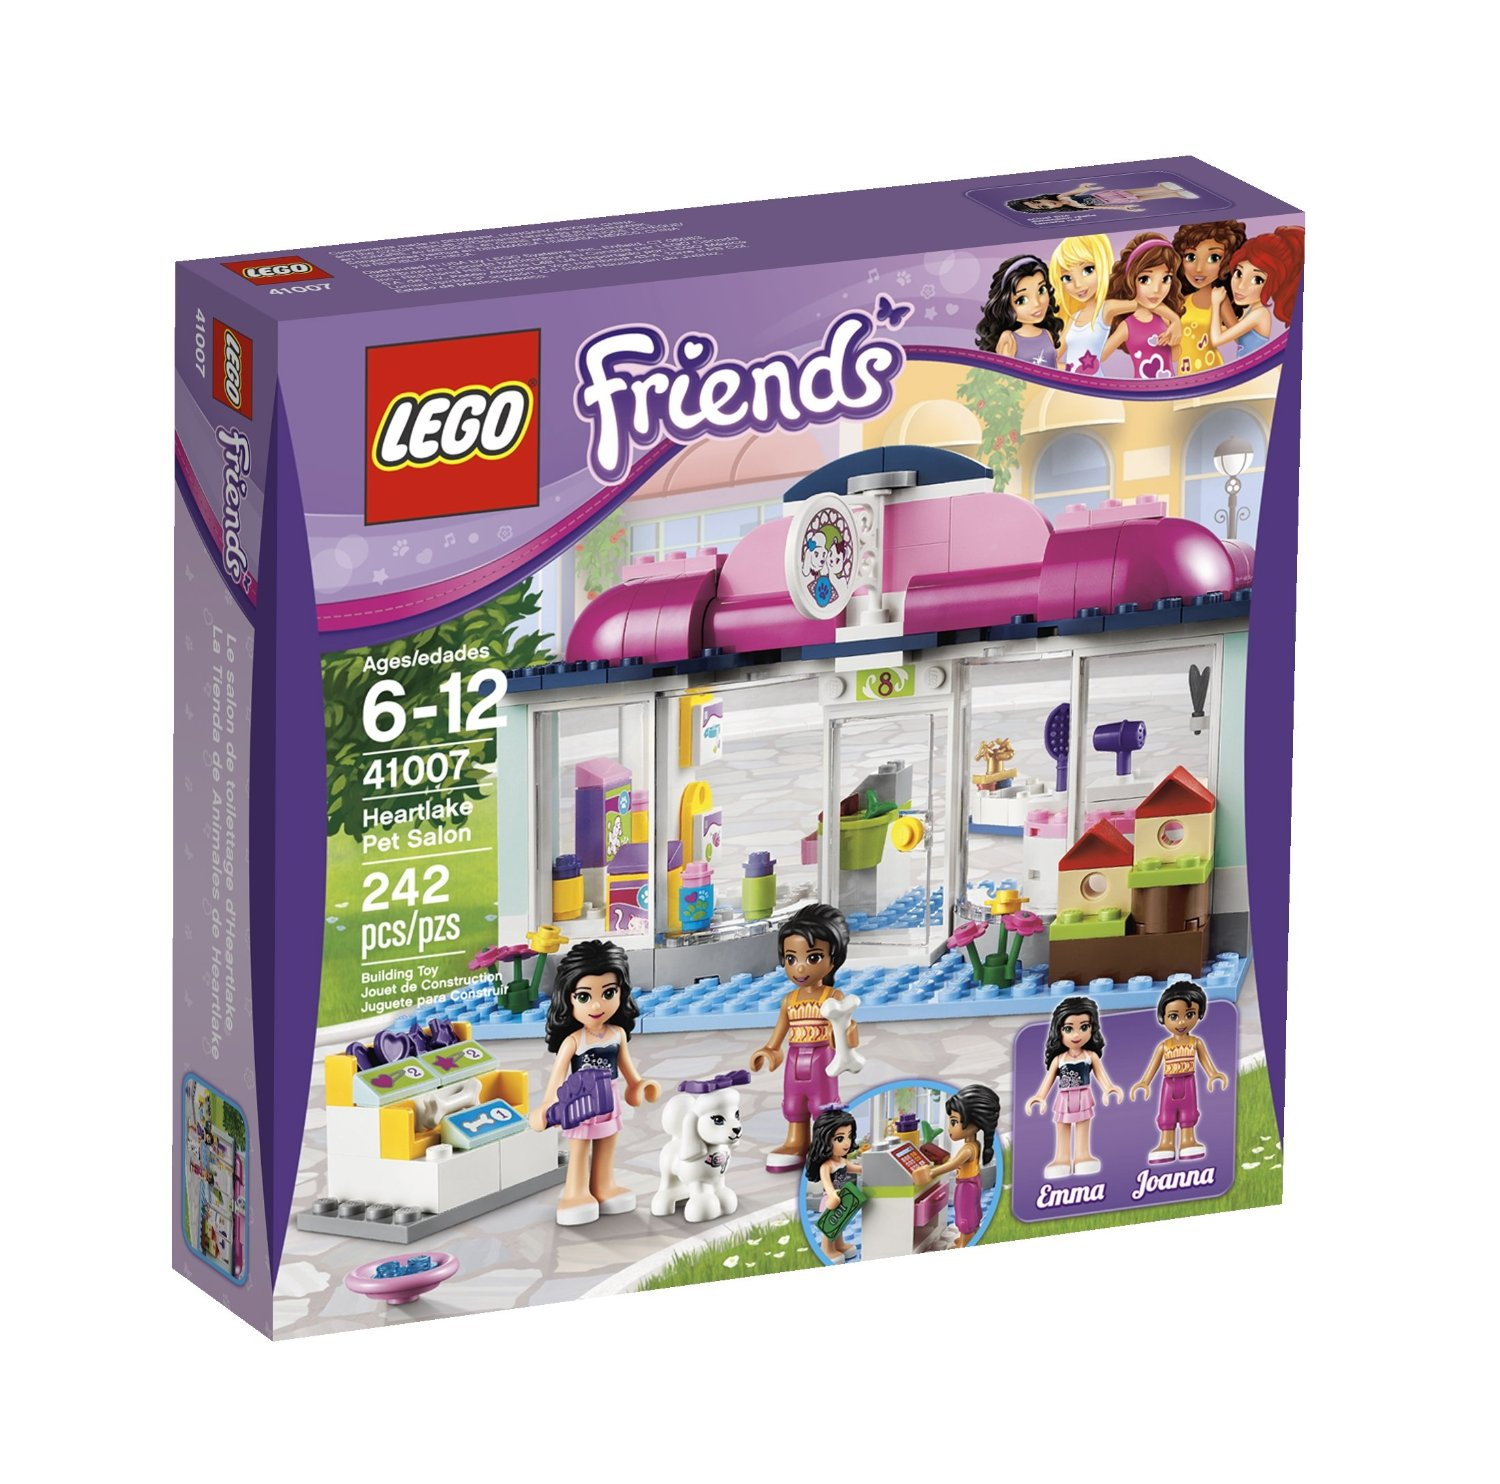 Heartlake Salon LEGO Friends Sets for Animal Lovers